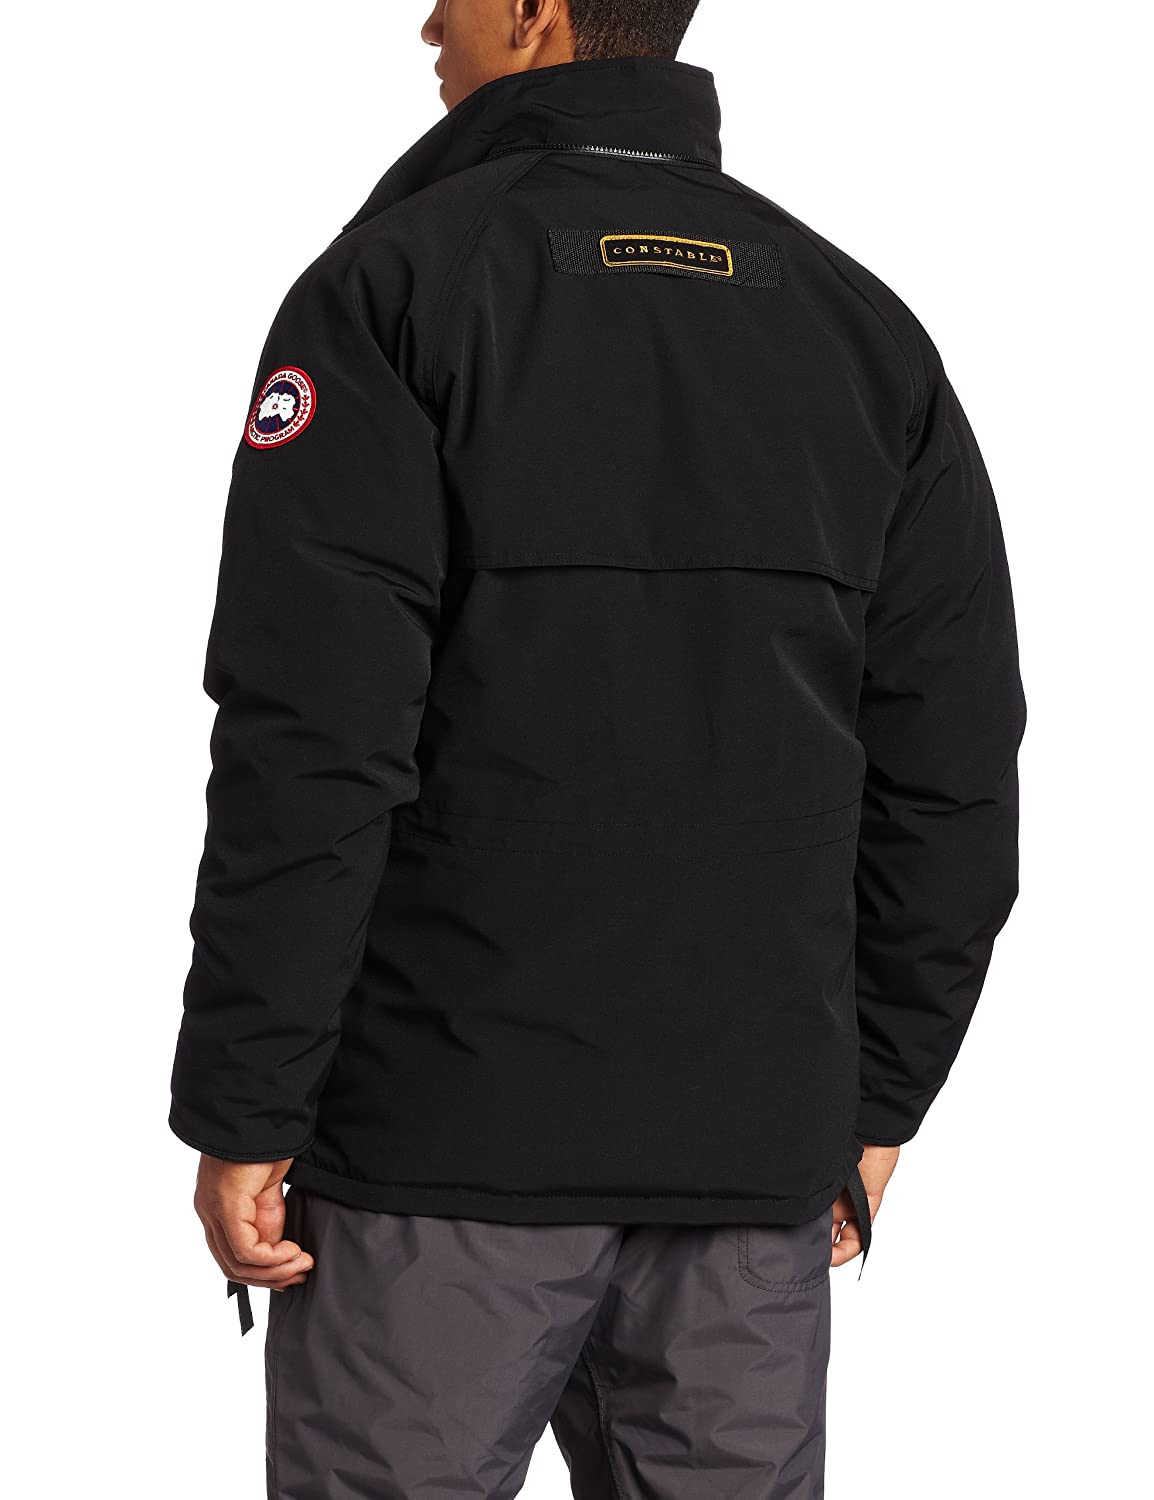 Canada Goose fake - Amazon.com: Canada Goose Men's Constable Parka: Sports & Outdoors